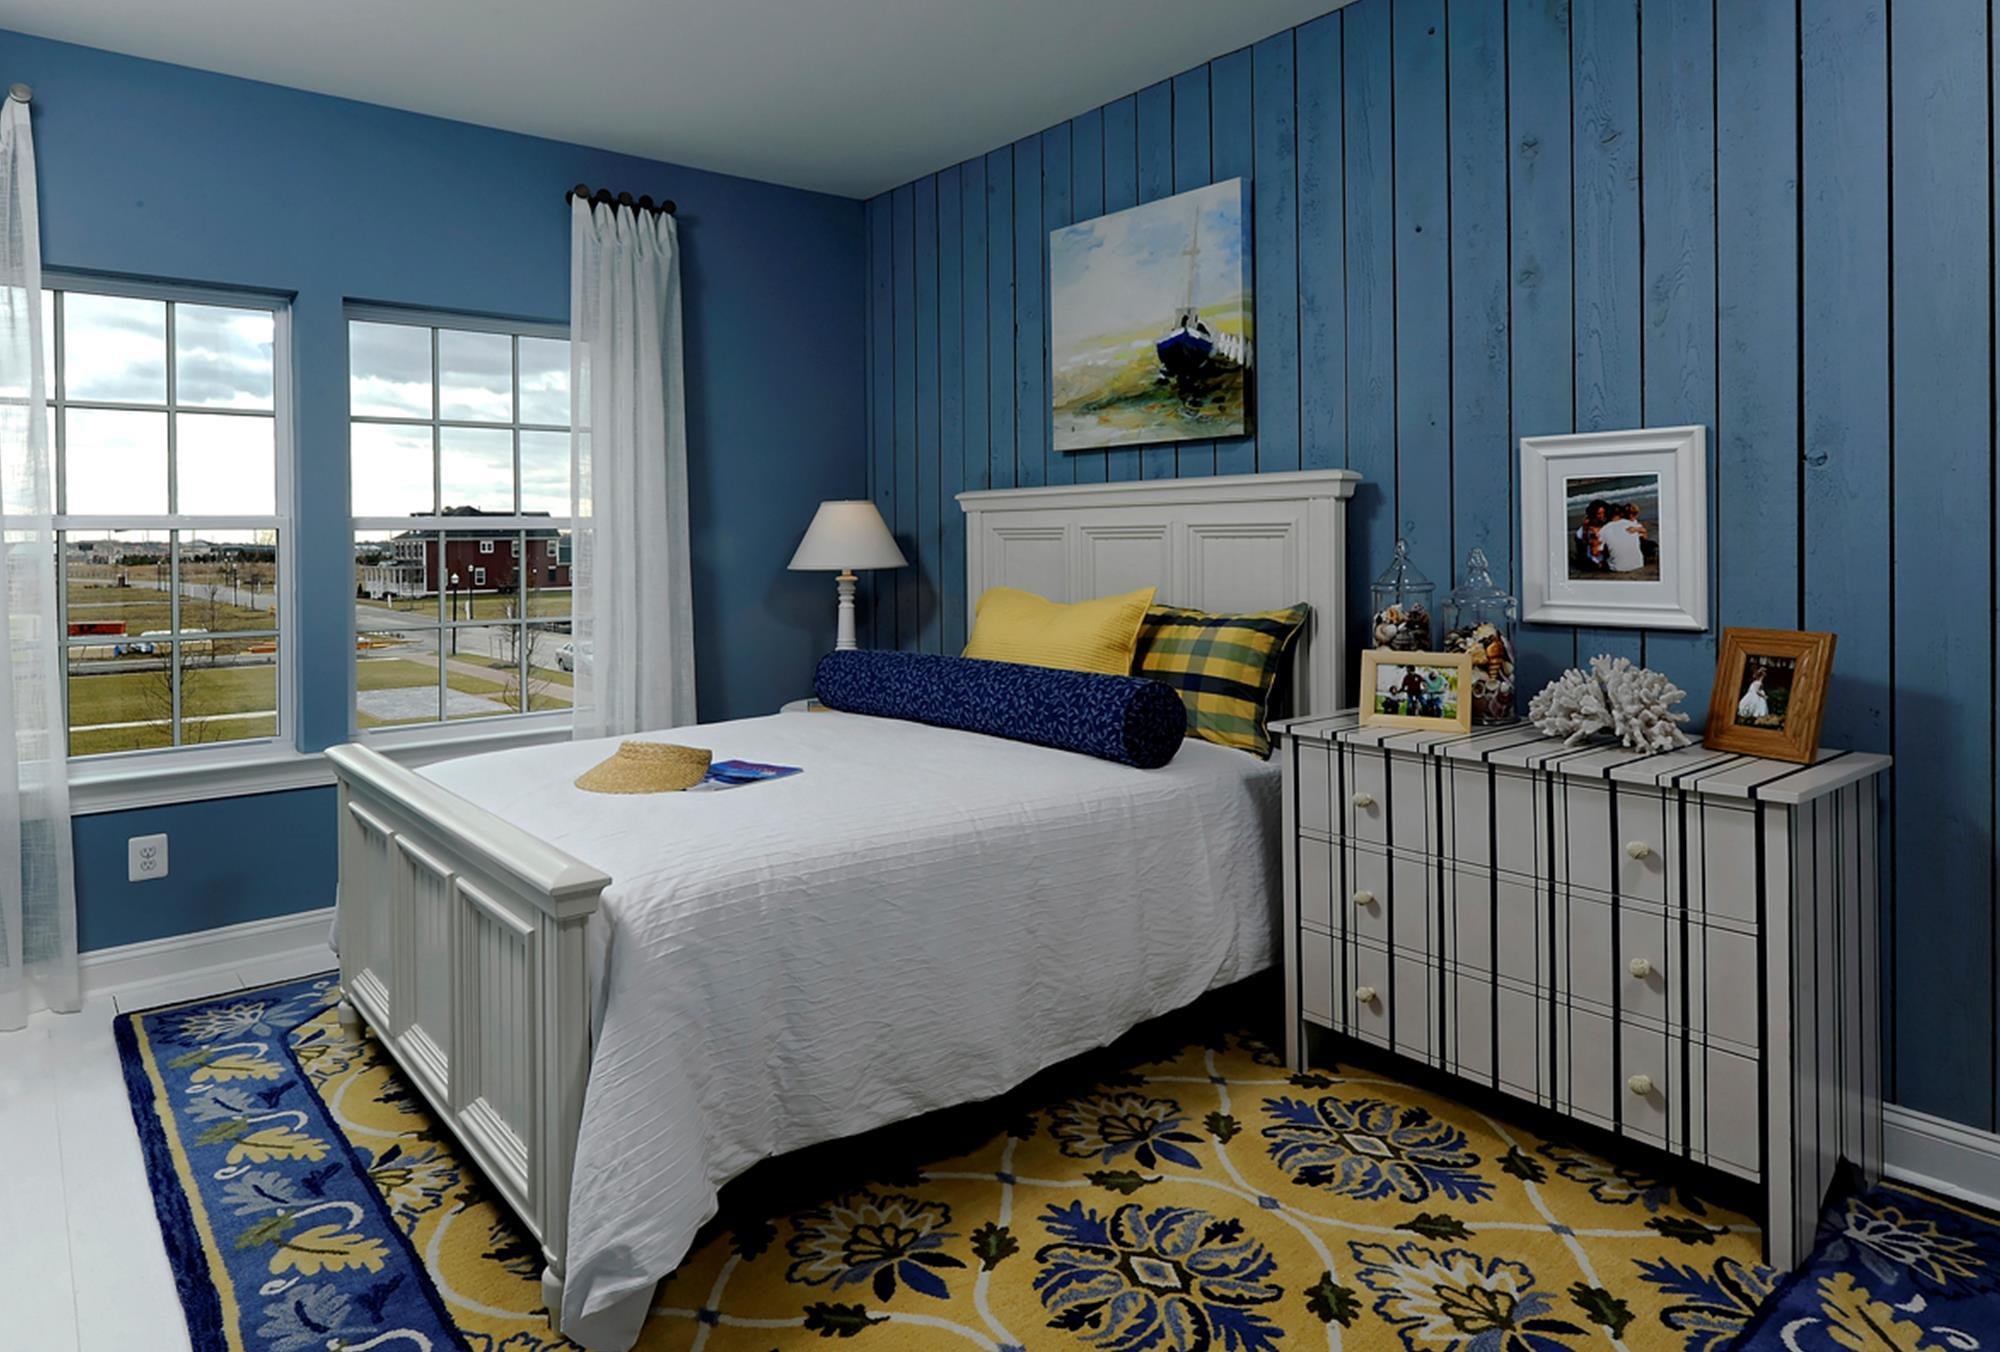 Bedroom featured in the Chatham Classic By Covell Communities in Eastern Shore, MD